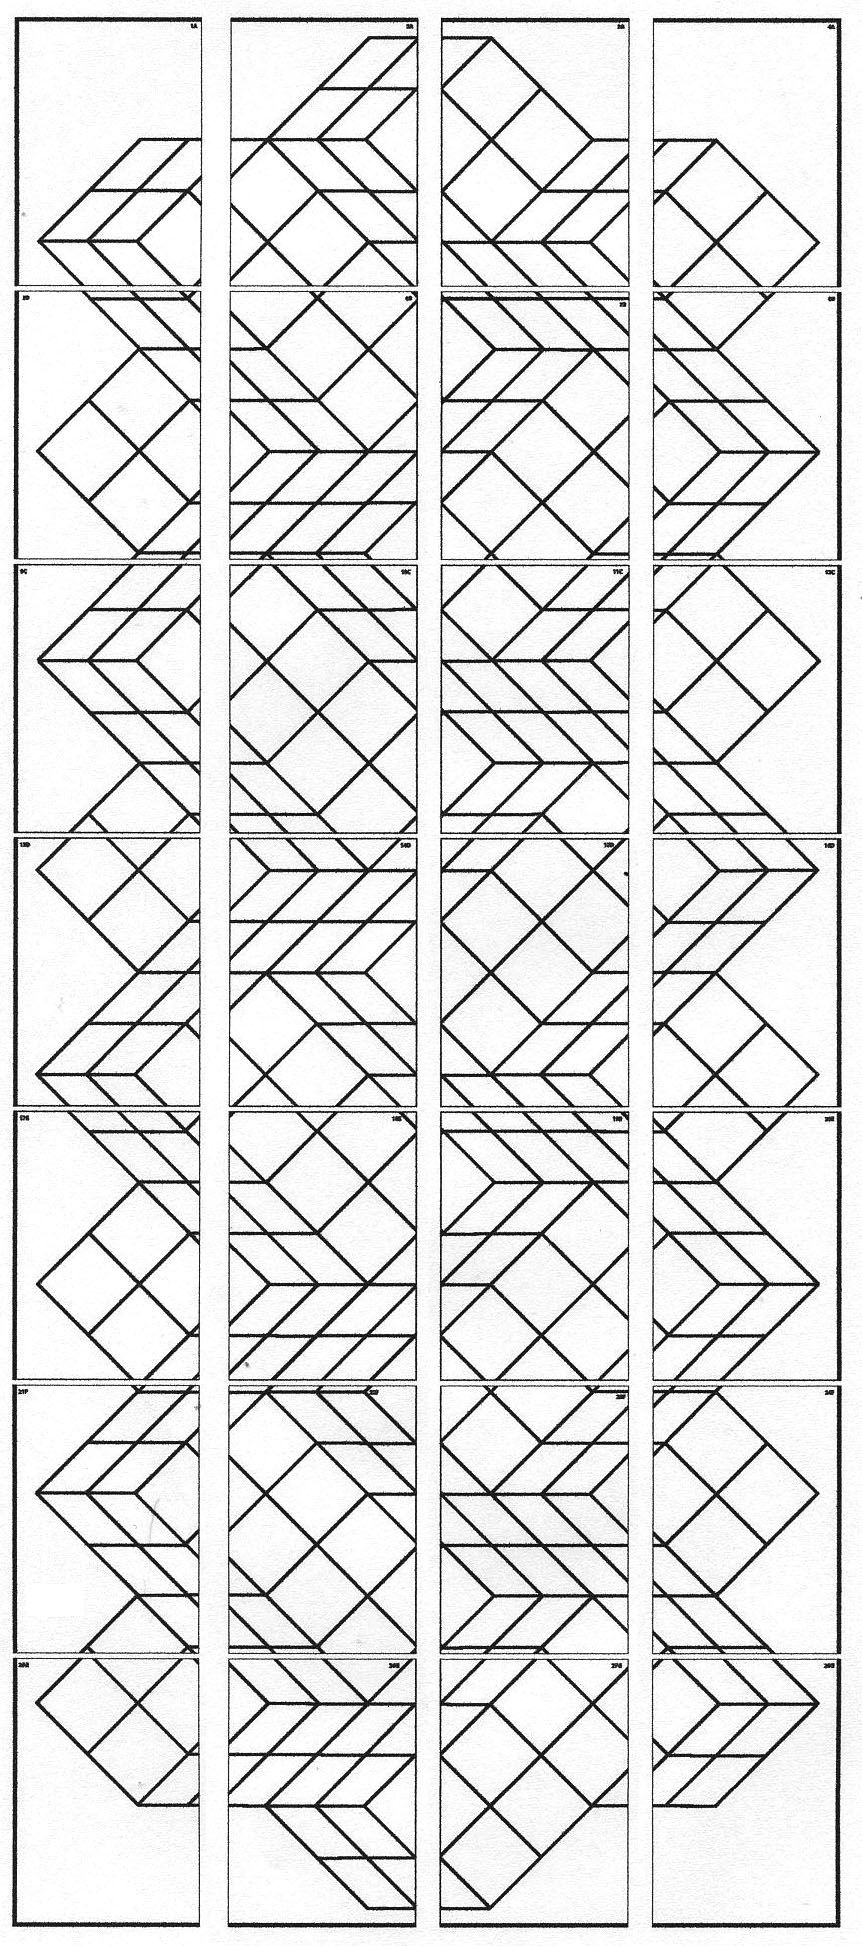 vasarely coloring pages - photo#15